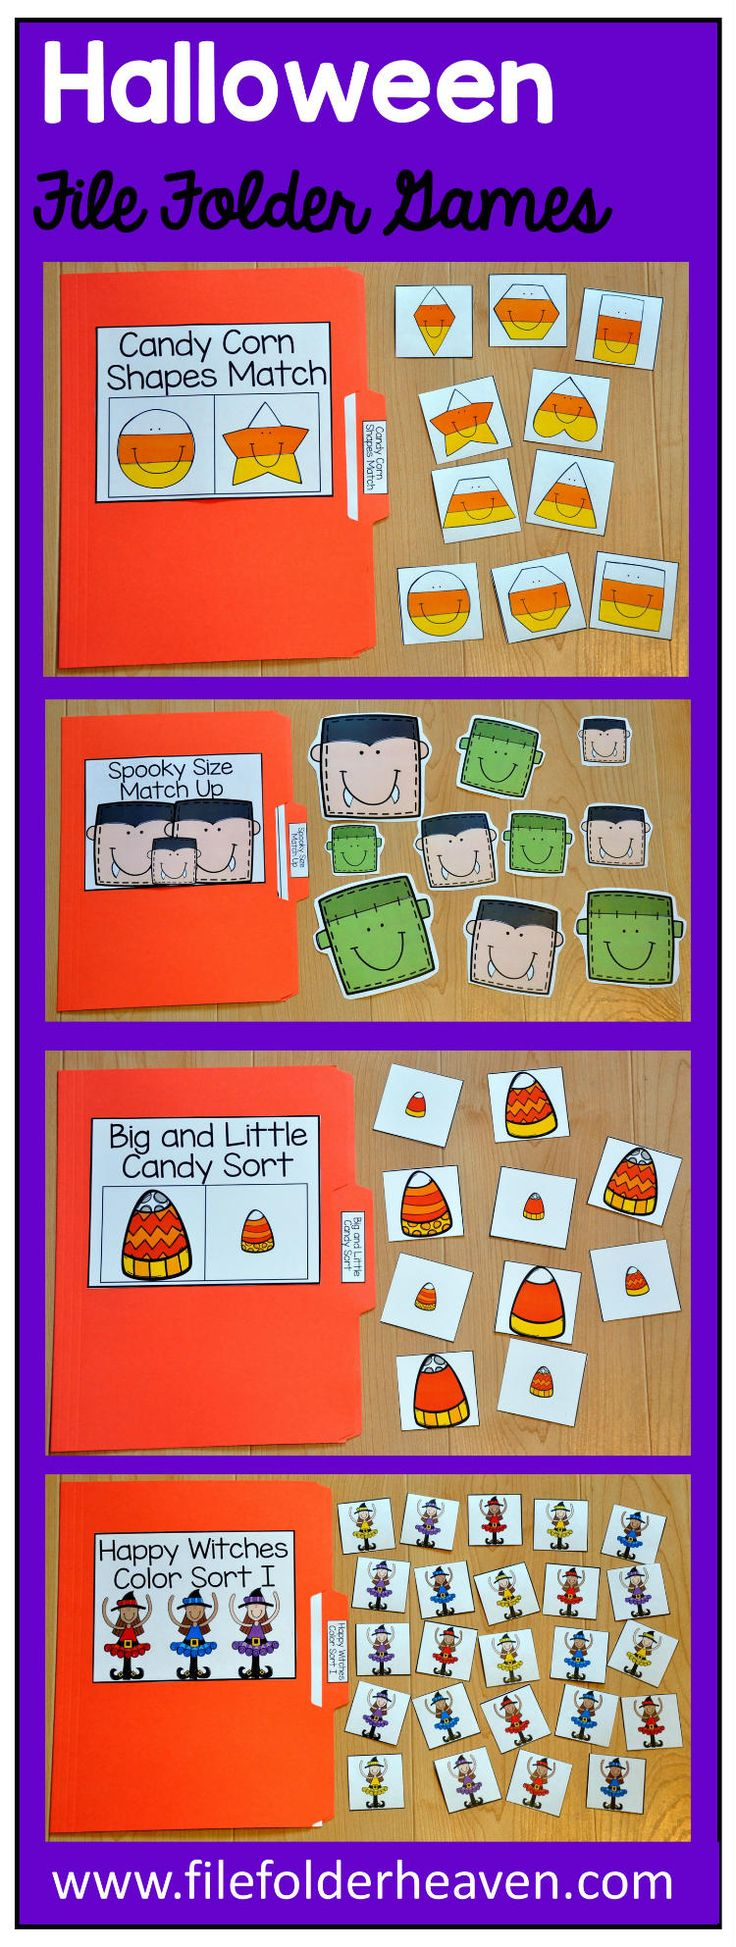 This Halloween File Folder Games Mini-Bundle focuses on basic matching and sorting skills.    This set includes nine unique file folder games with four bonus games for differentiation (for a total of 13 games!) These activities  focus on basic skills, such as matching picture to picture, matching shapes, matching numbers, matching letters, matching by size, sorting by size, sorting by color, and sorting by likeness and differences.